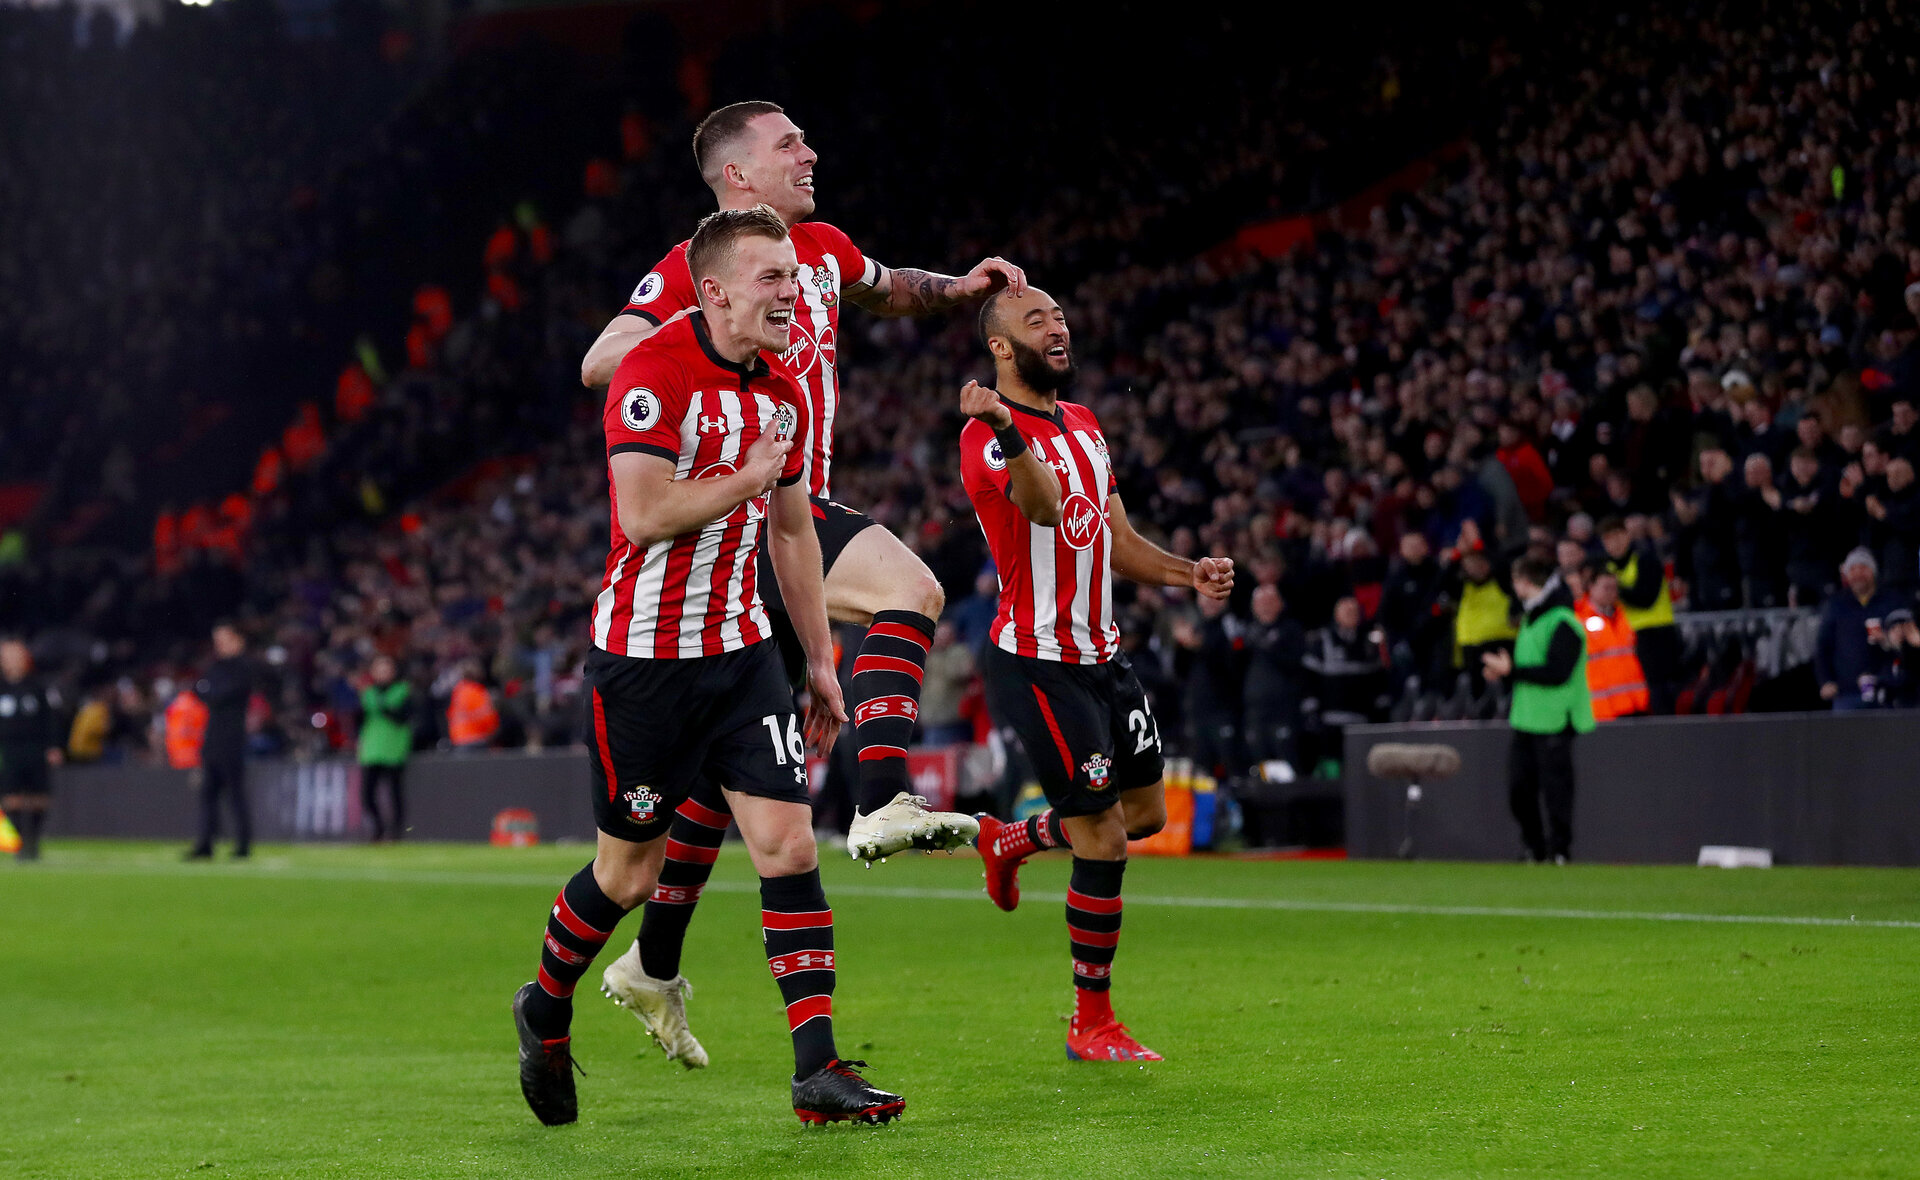 SOUTHAMPTON, ENGLAND - JANUARY 19: James Ward-Prowse(L) of Southampton celebrates with Pierre-Emile Hojbjerg(centre) and Nathan Redmond(R) after opening the scoring during the Premier League match between Southampton FC and Everton FC at St Mary's Stadium on January 19, 2019 in Southampton, United Kingdom. (Photo by Matt Watson/Southampton FC via Getty Images)